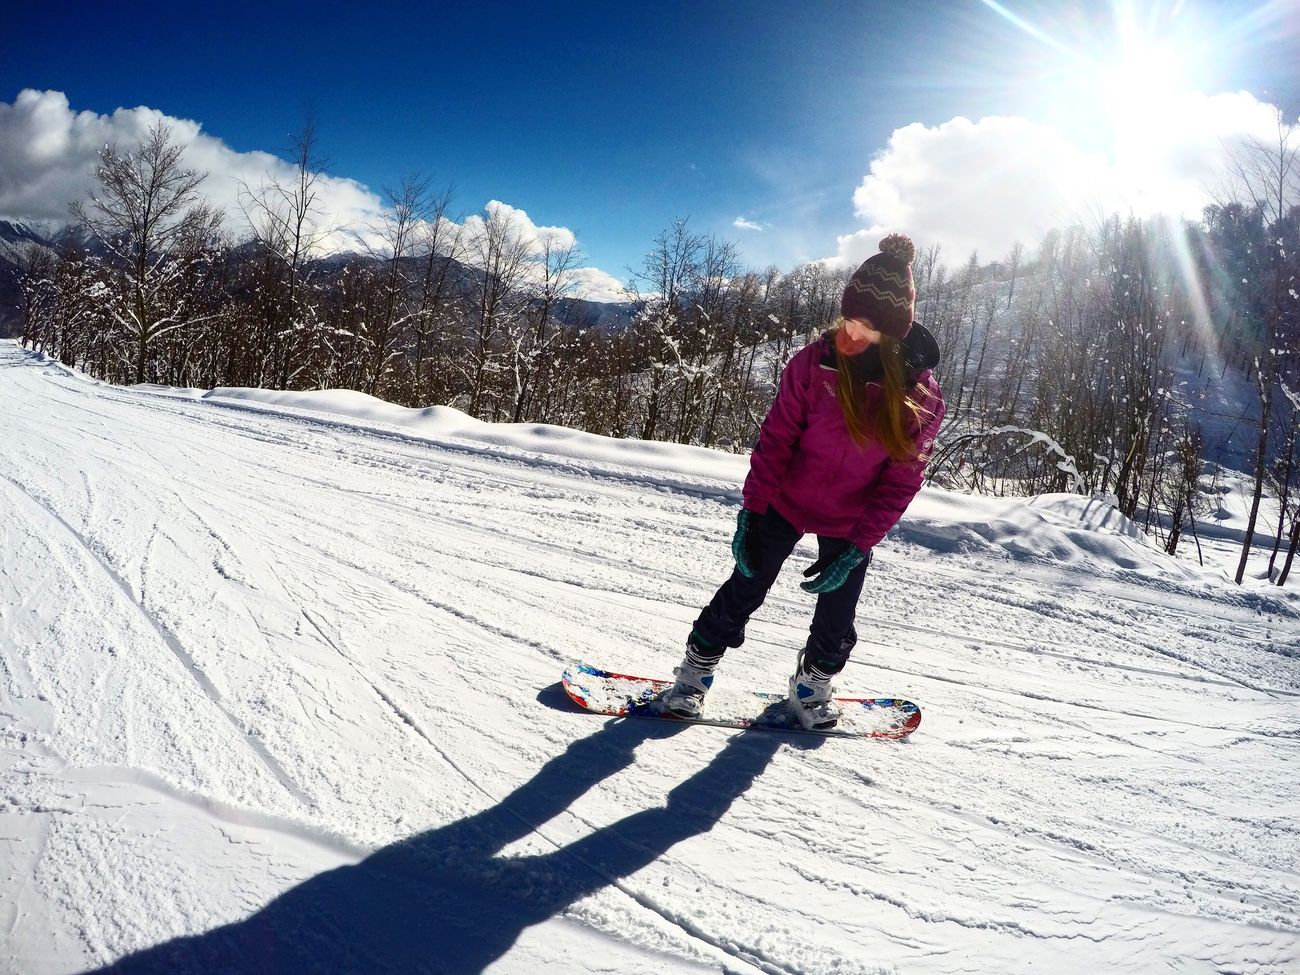 Snow Winter Cold Temperature Sunlight Warm Clothing Full Length Leisure Activity One Person Real People Outdoors Lifestyles Day Ski Holiday Sun Sky Childhood Tree Snowboarding Nature People Snowboard Sochi Rosakhutor